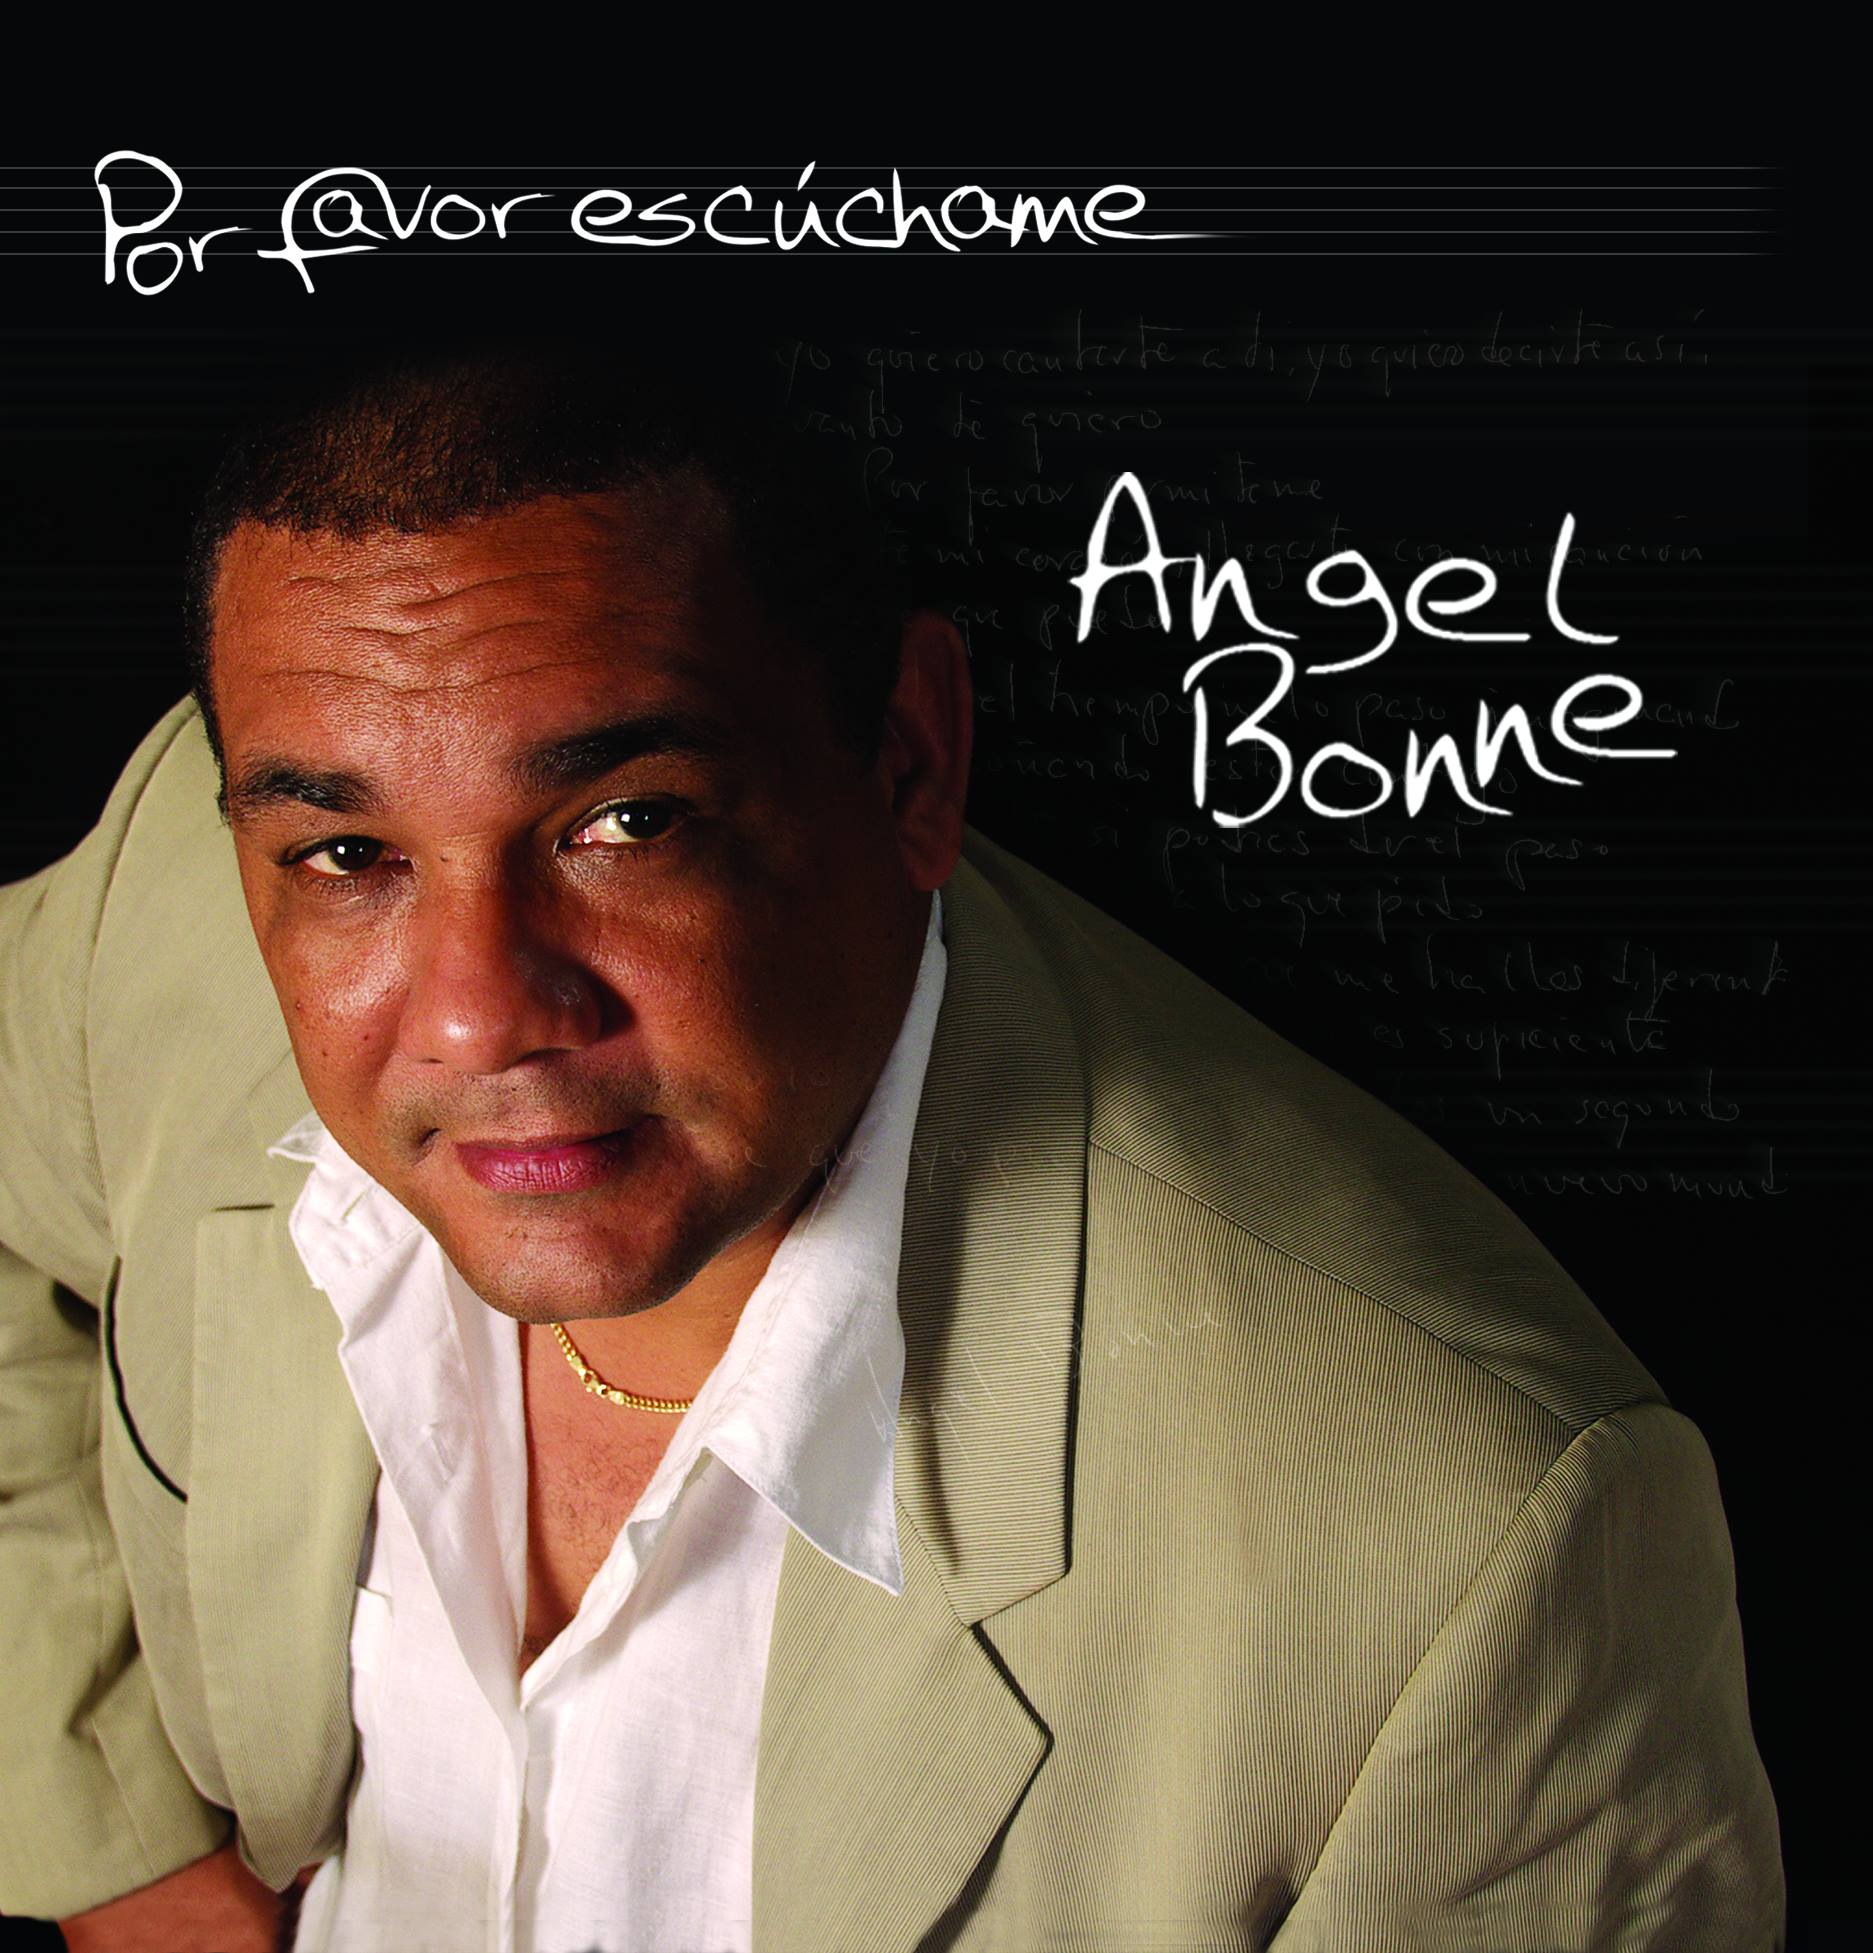 His versatility allows him to venture into several musical genres, among which jazz, Nueva Trova and popular music stand out.